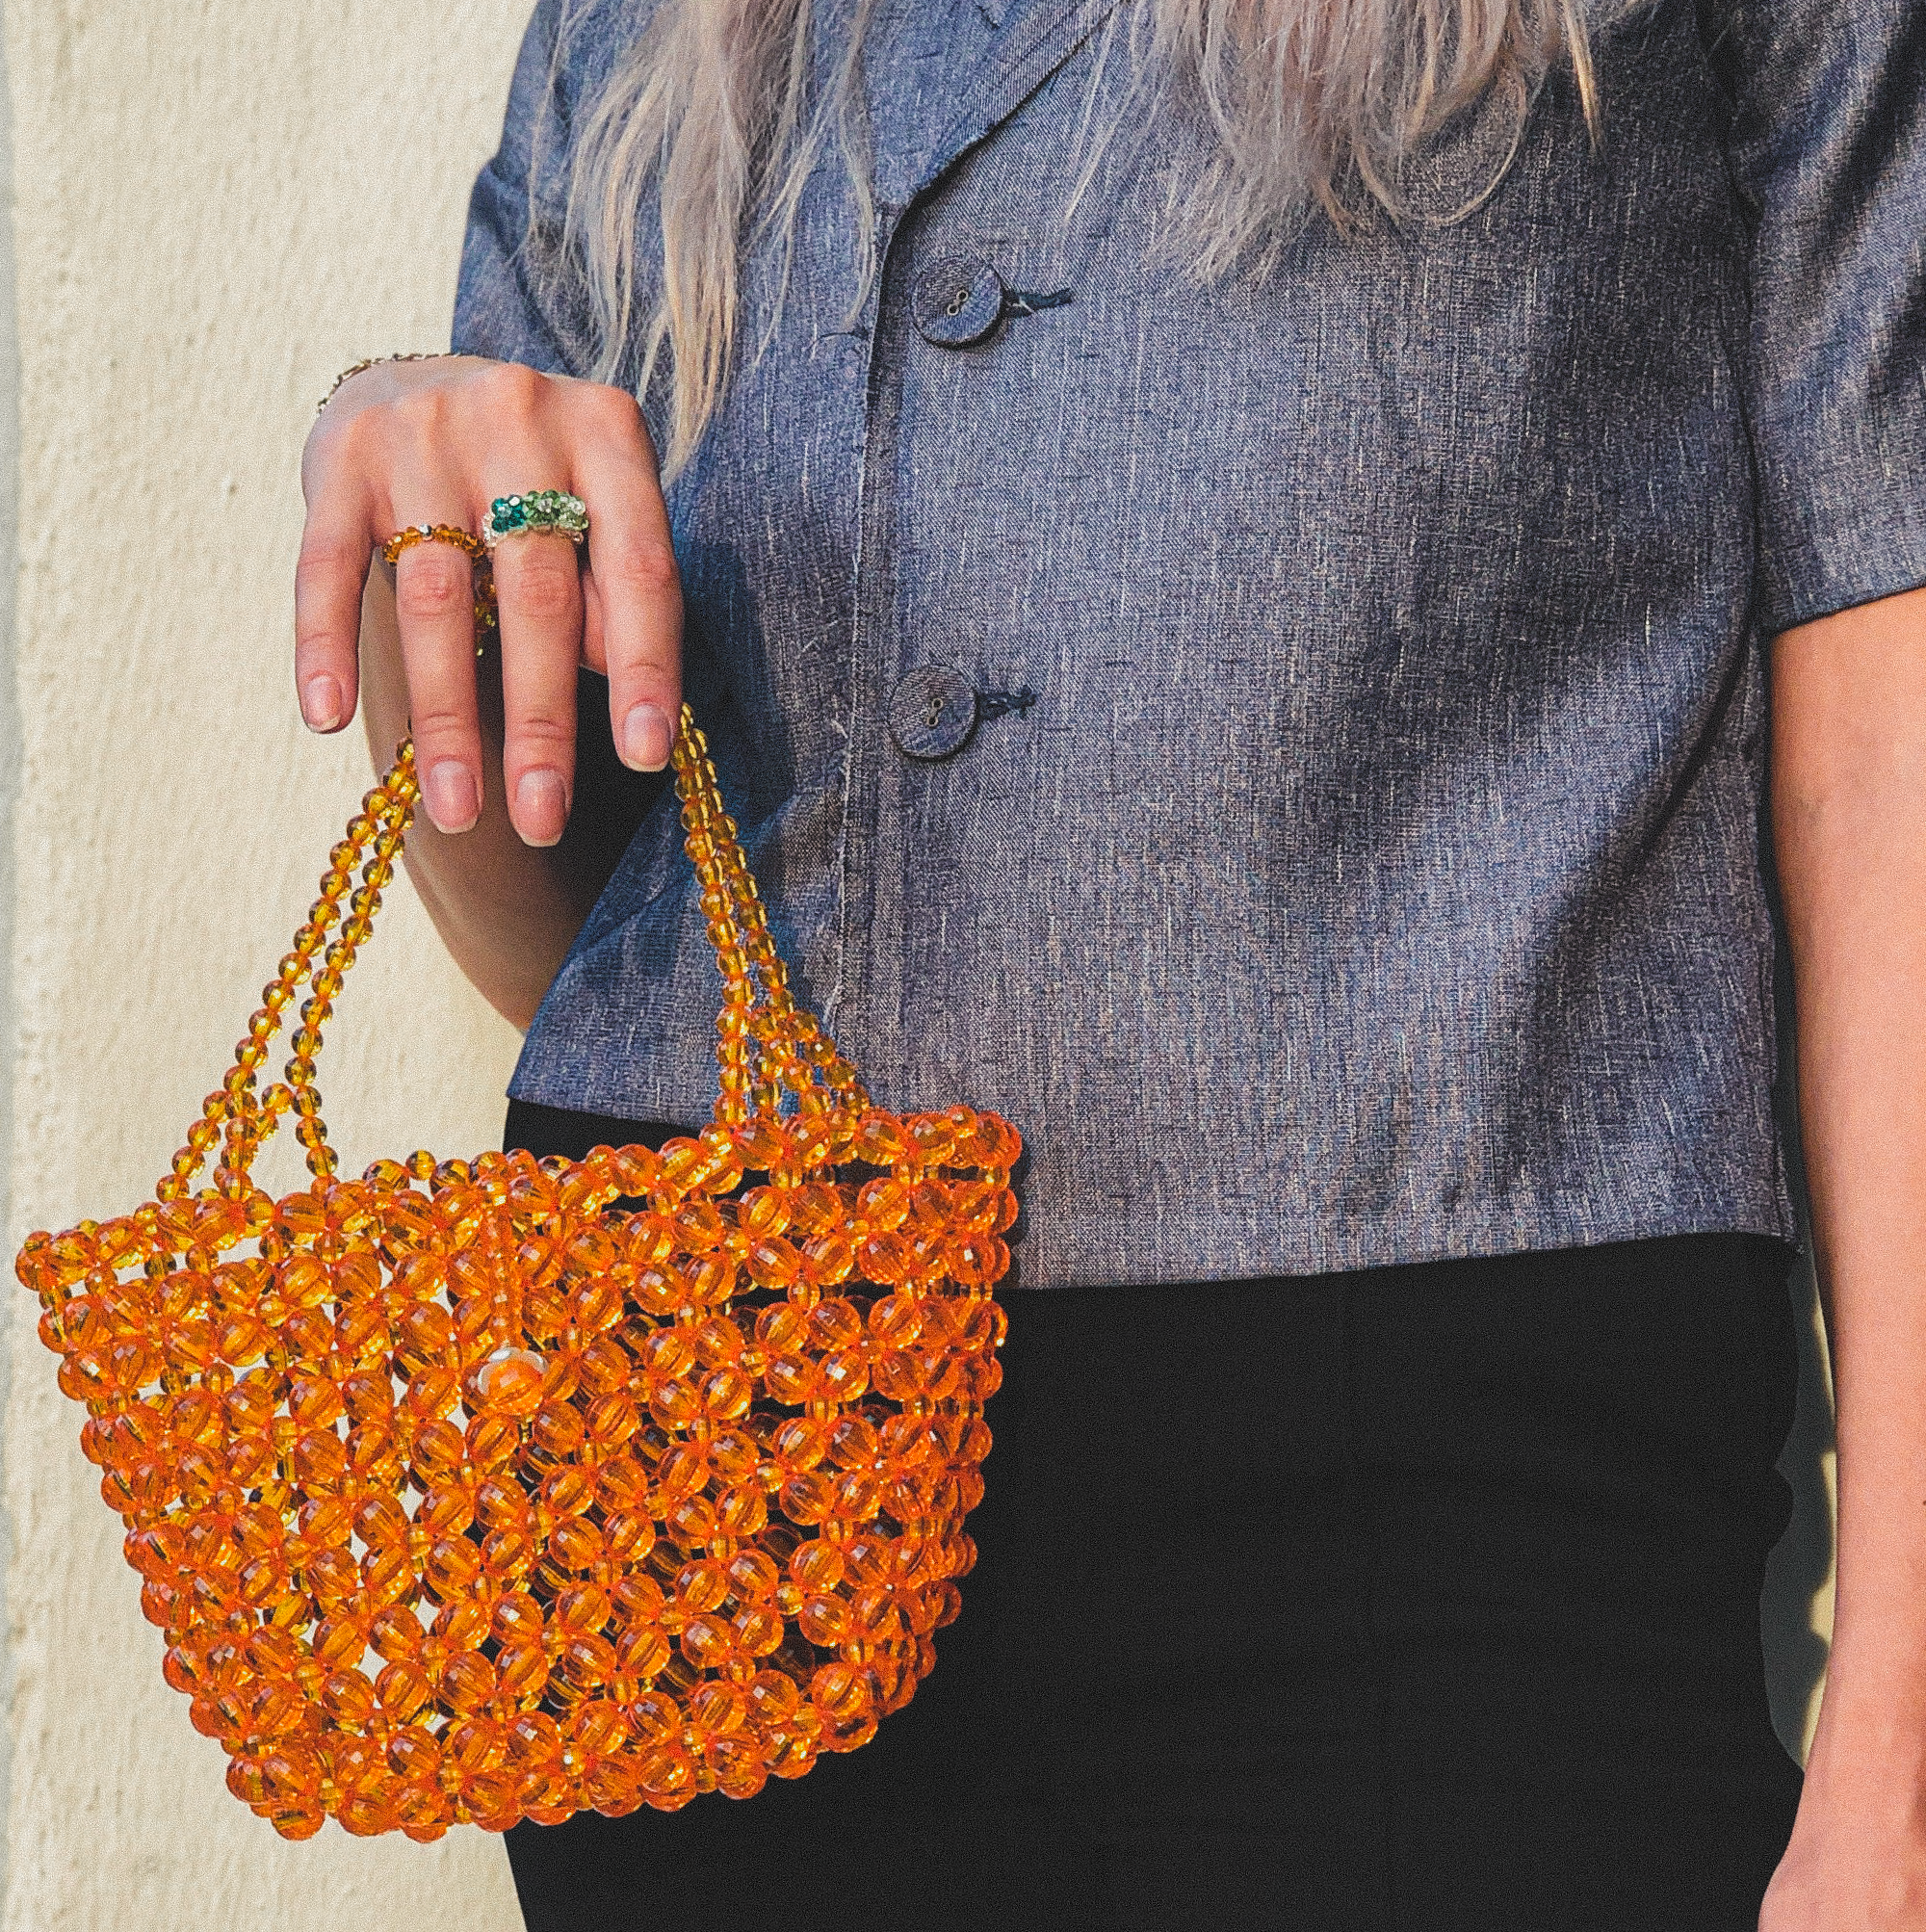 Clementine Beaded Bag by Veronique